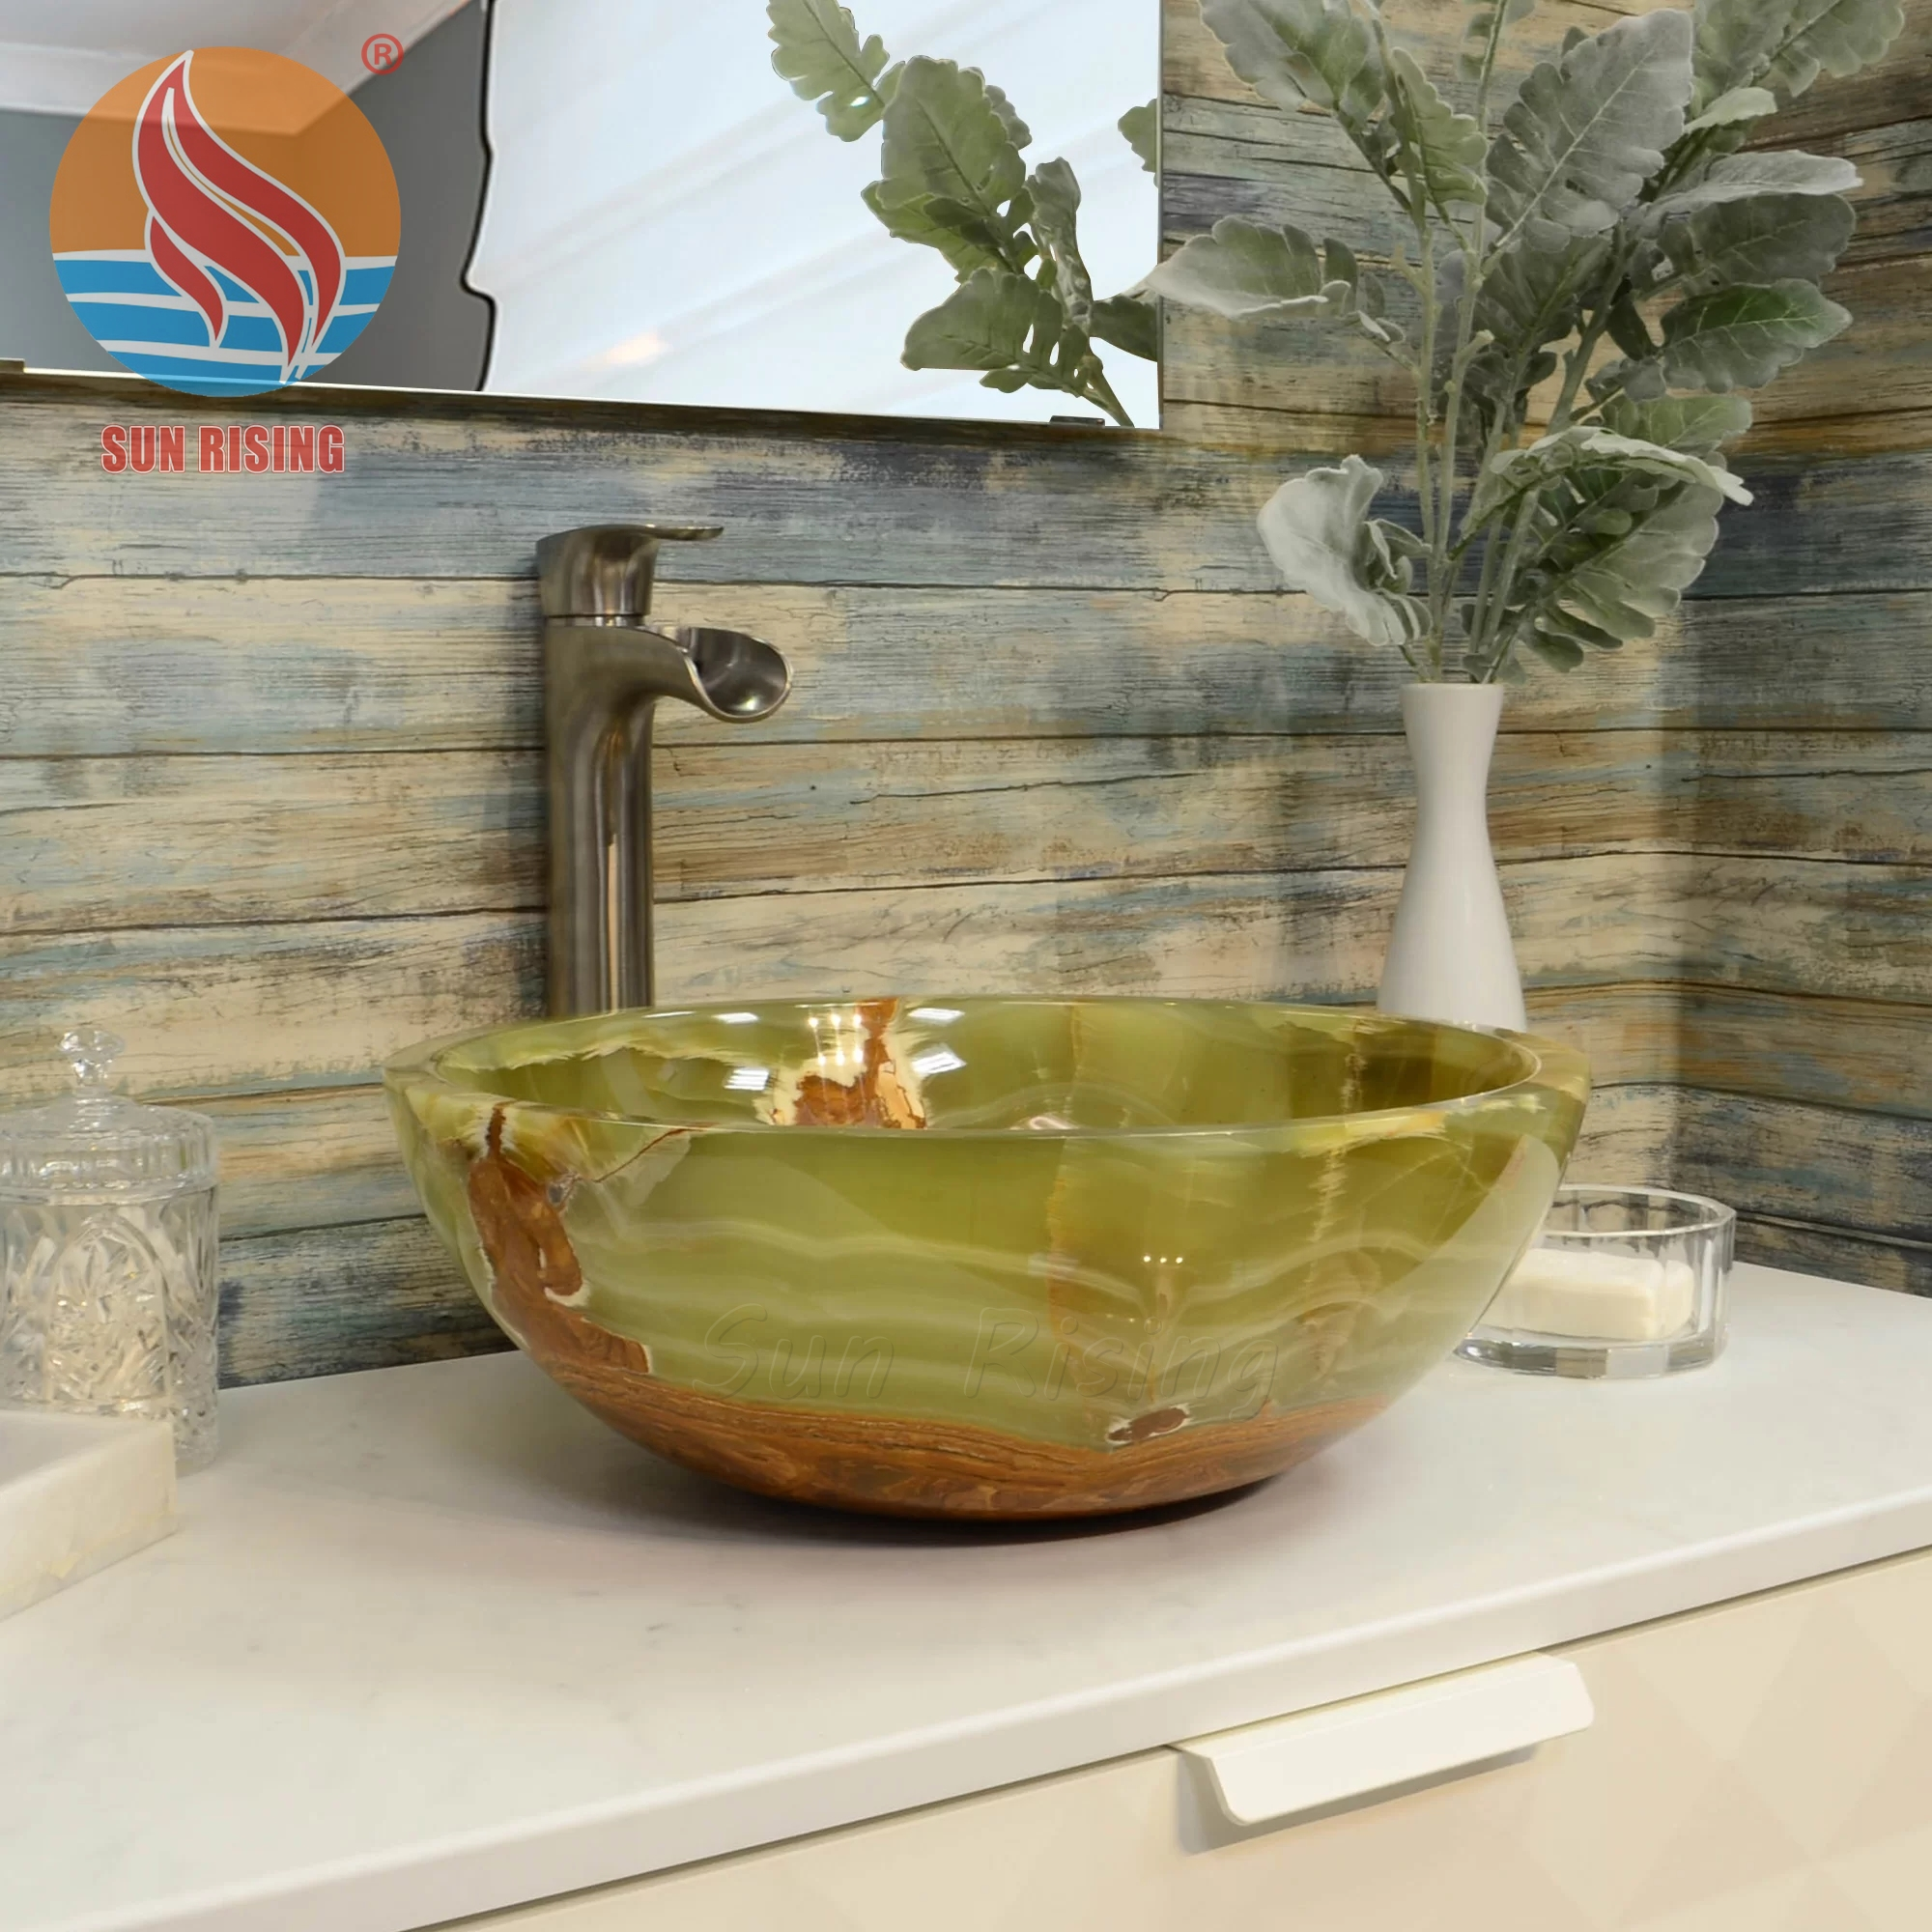 Highly Polished Marble Green Onyx Bathroom Vessel Sinks - Buy Bathroom  Sinks,Green Onyx Sinks,Marble Vessel Sinks Product on Alibaba.com